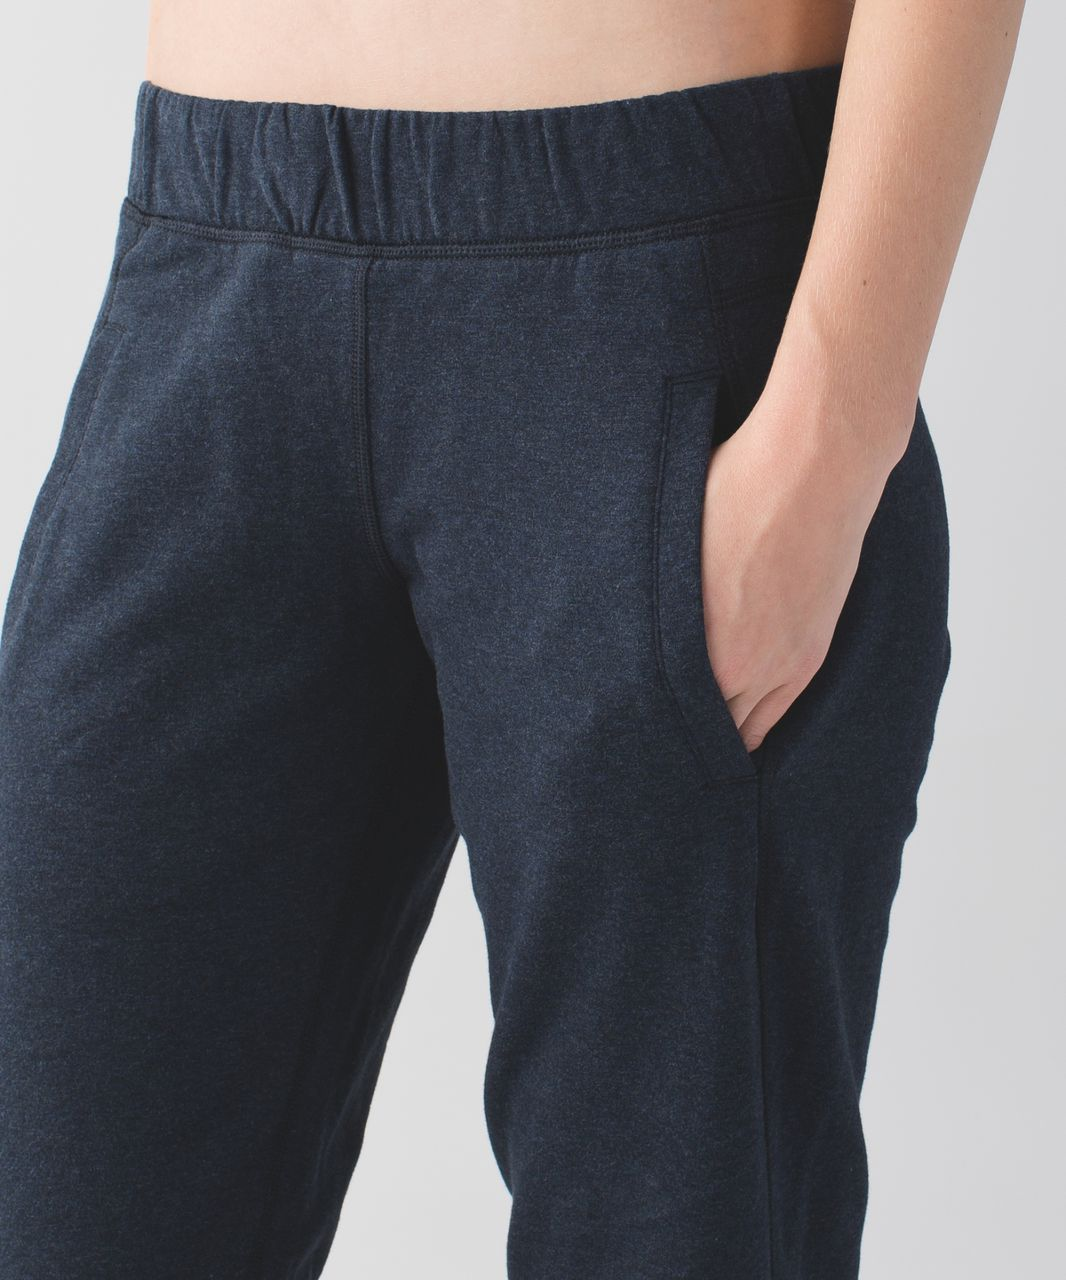 Lululemon Sattva Pant II - Heathered Naval Blue